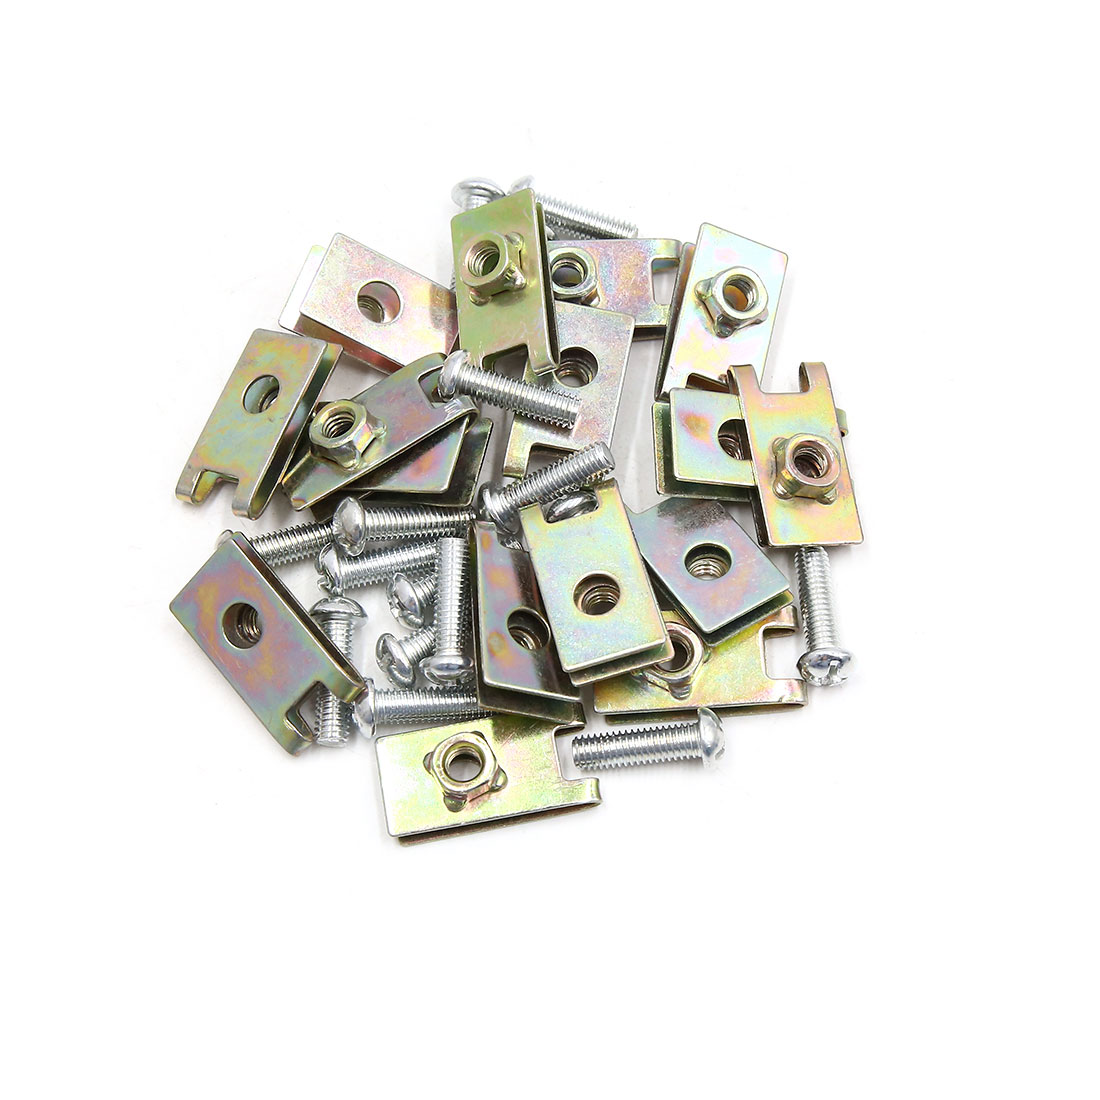 16PCS 6mm Thread Dia License Plate Fixing Clips Kit for Motorcycle Car